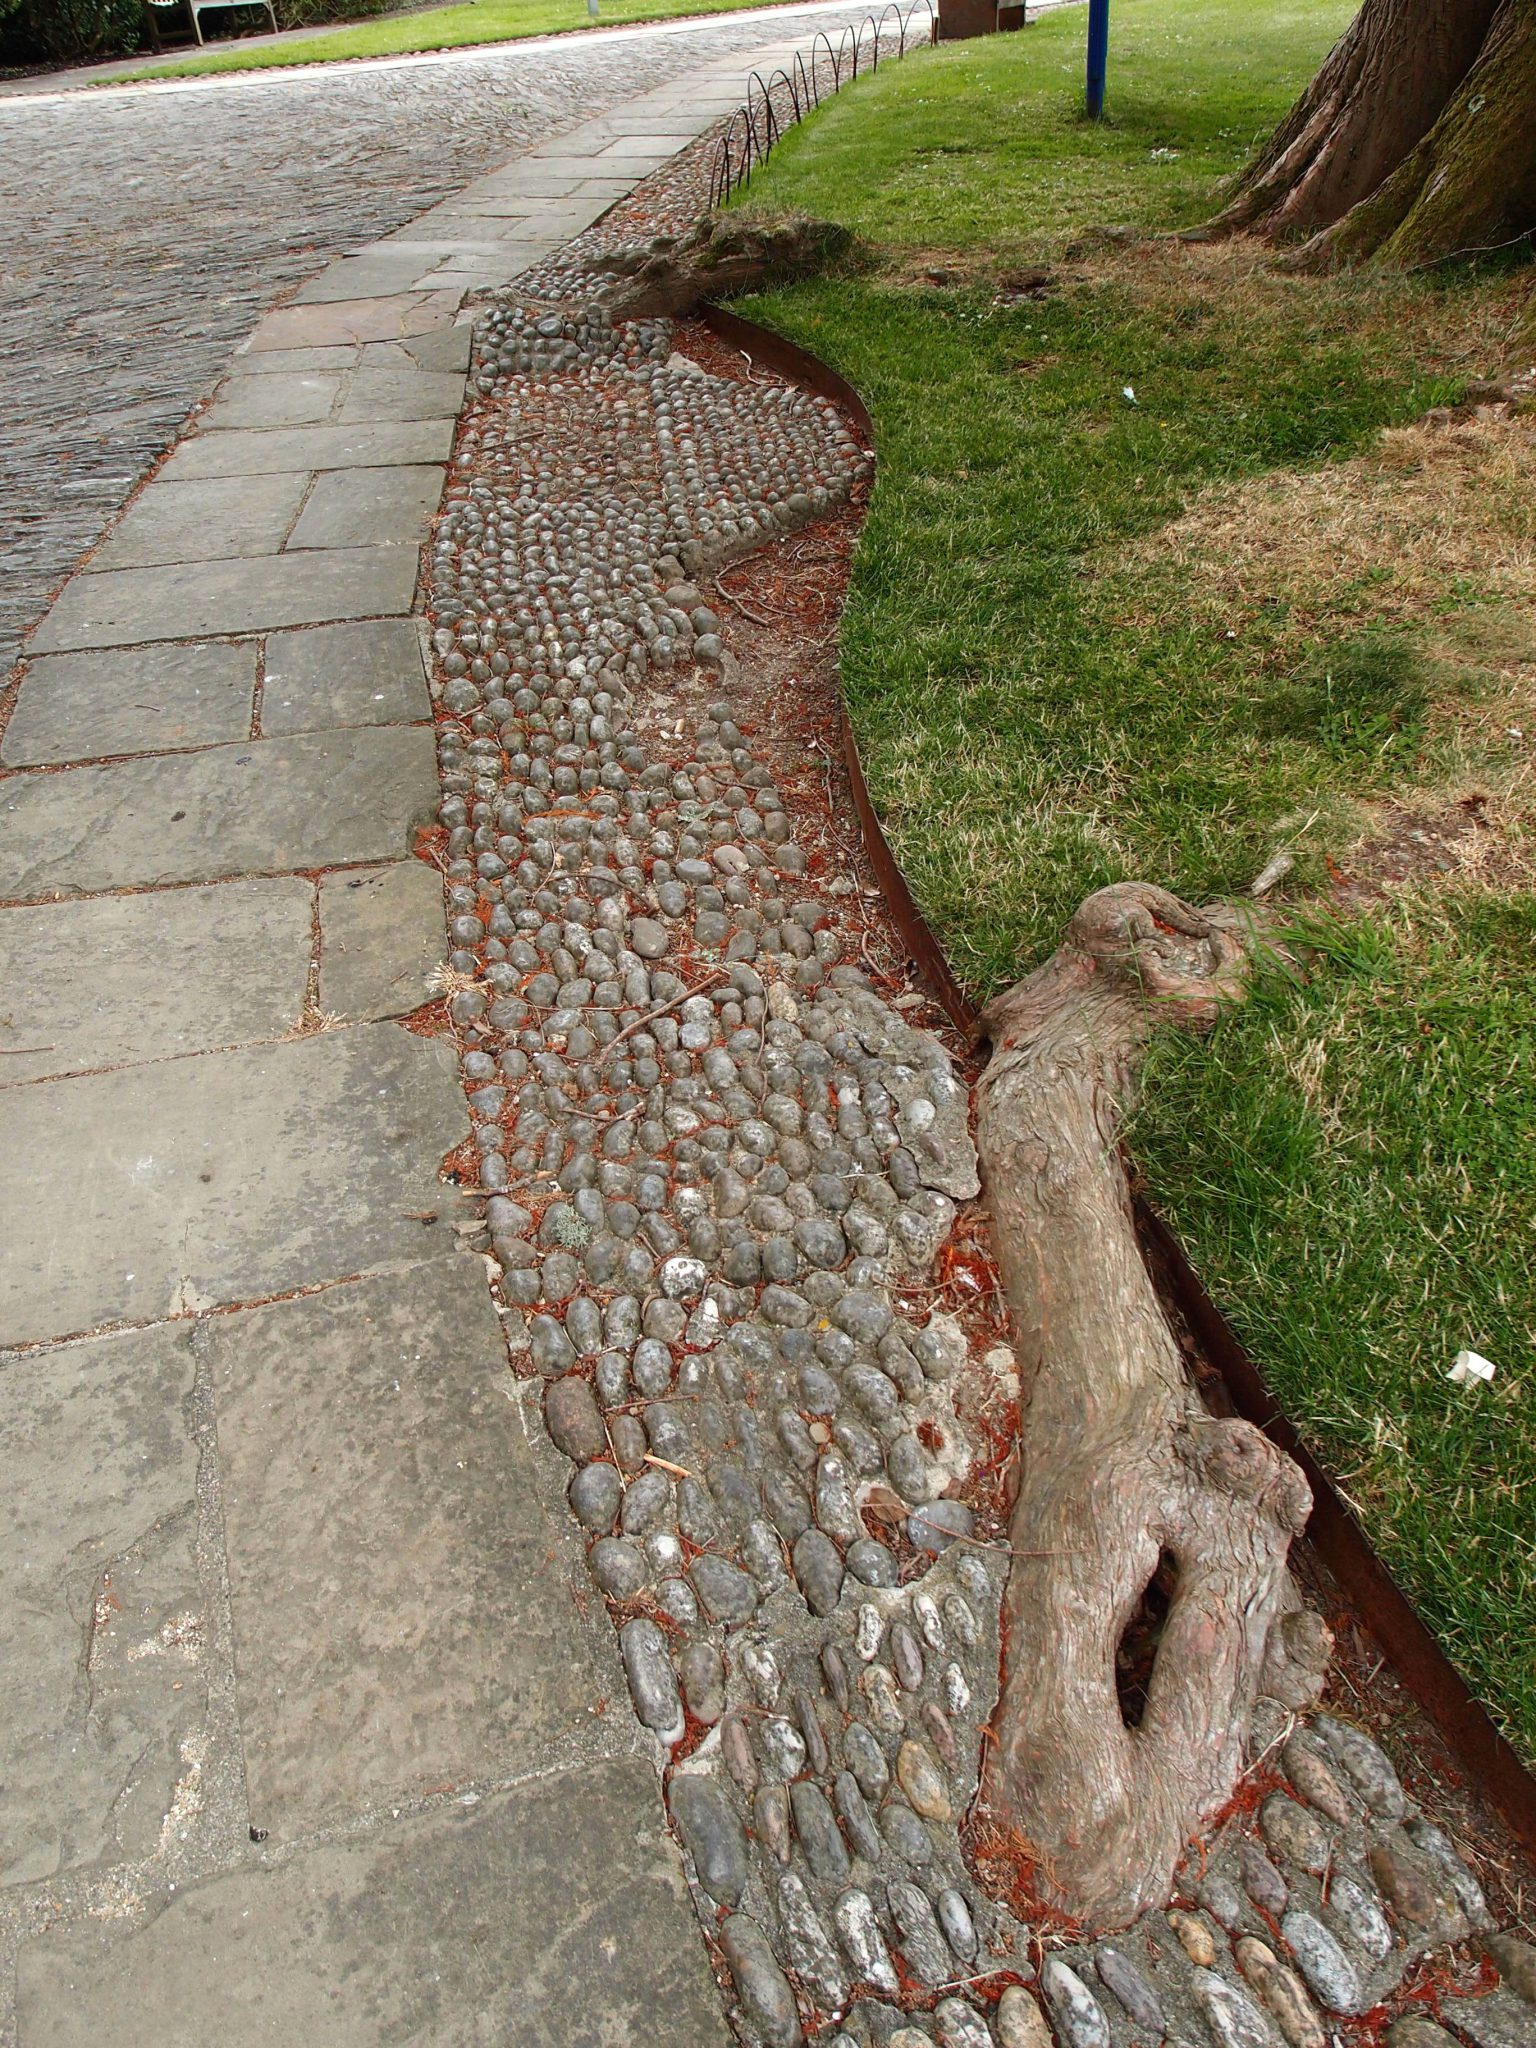 When paving stones were laid in the 1930s, care was taken to not disturb the roots of the Swamp Cypress.